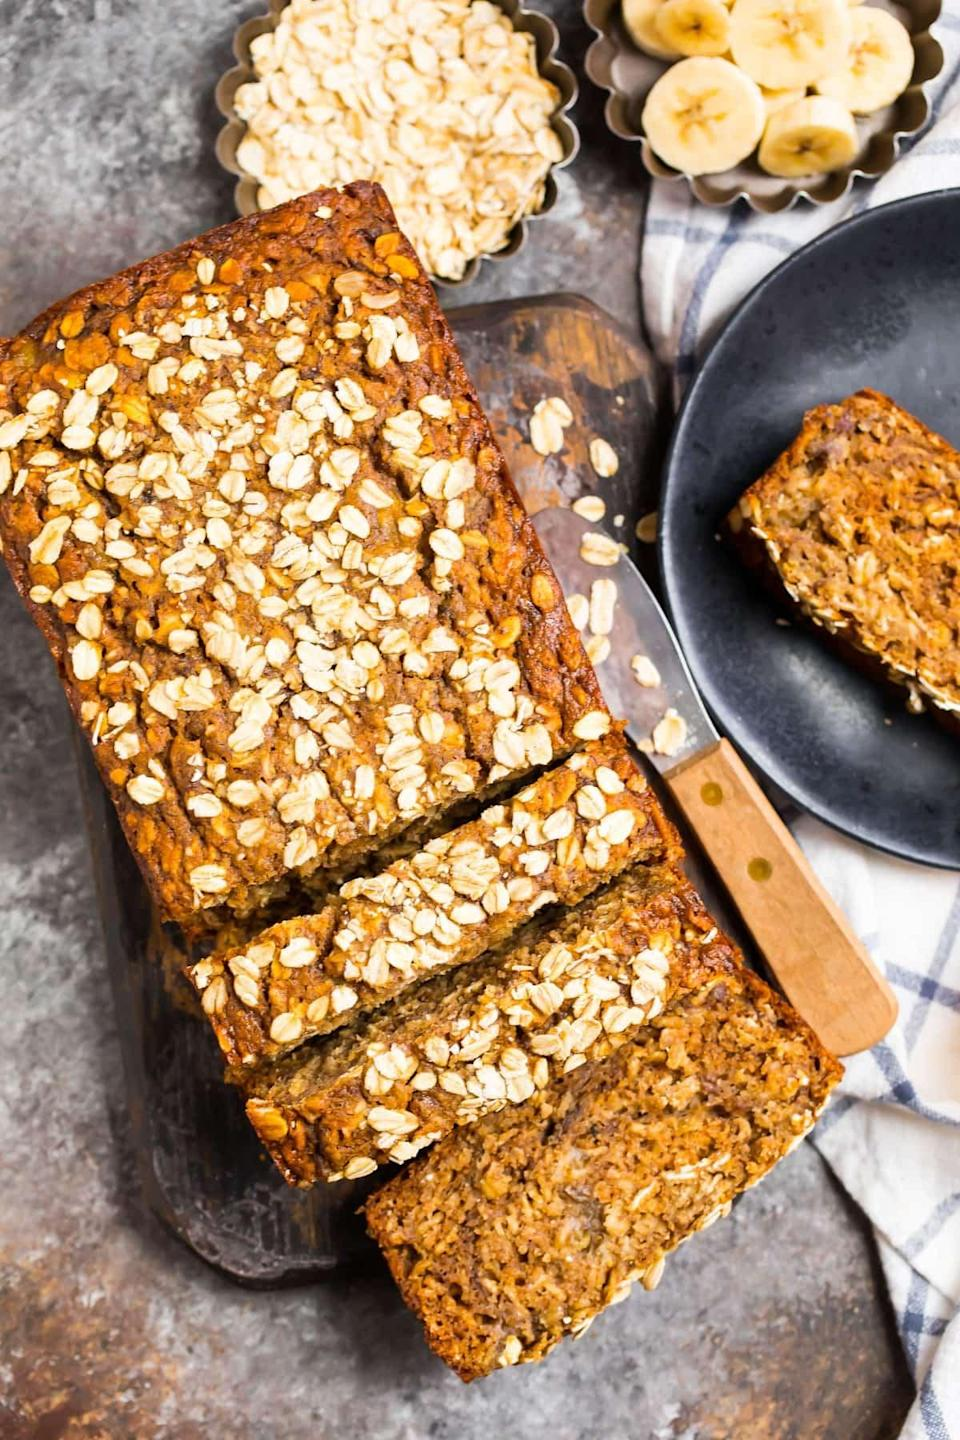 "<p>Bread baking makes another appearance in Maine! Switch things up by adding oats and bananas to make this delicious recipe, and you'll be getting a loaf that's like a mix between oatmeal cookies and bread. </p> <p><strong>Get the recipe:</strong> <a href=""https://www.wellplated.com/oatmeal-banana-bread/"" class=""link rapid-noclick-resp"" rel=""nofollow noopener"" target=""_blank"" data-ylk=""slk:oatmeal banana bread"">oatmeal banana bread</a></p>"